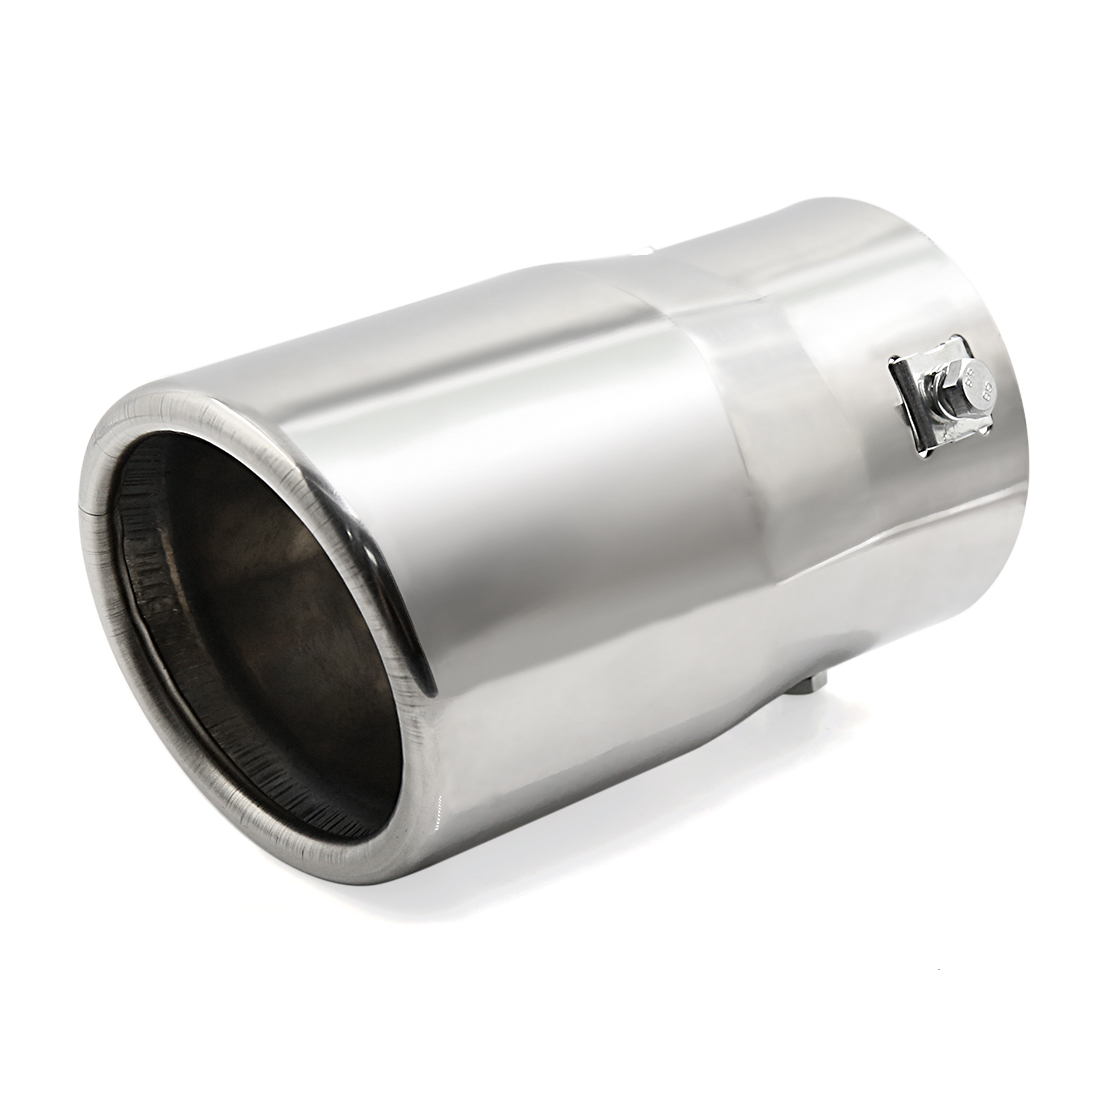 """Car Silver Tone Round Exhaust Muffler Tip Pipe Fit Diameter 1 3/4"""" to 2 1/2"""""""